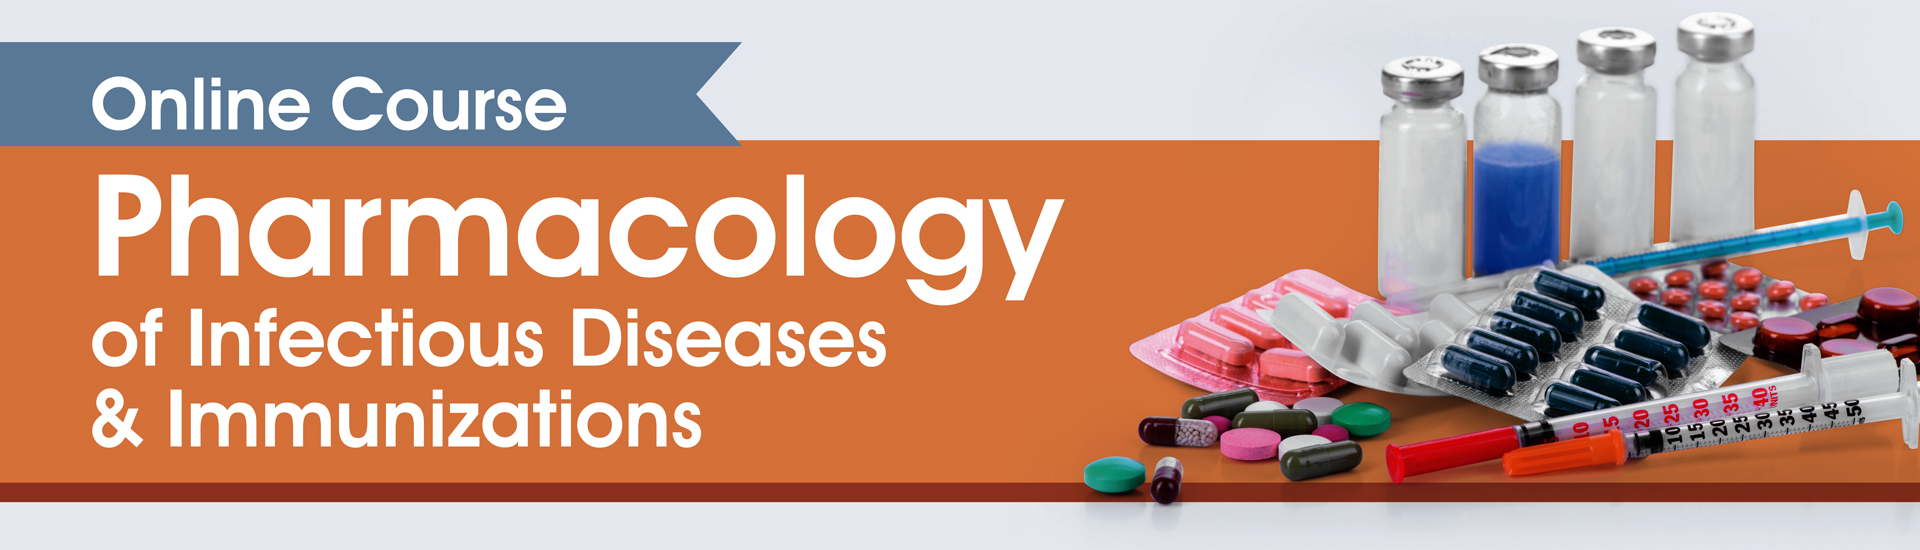 Pharmacology of Infectious Diseases Online Course